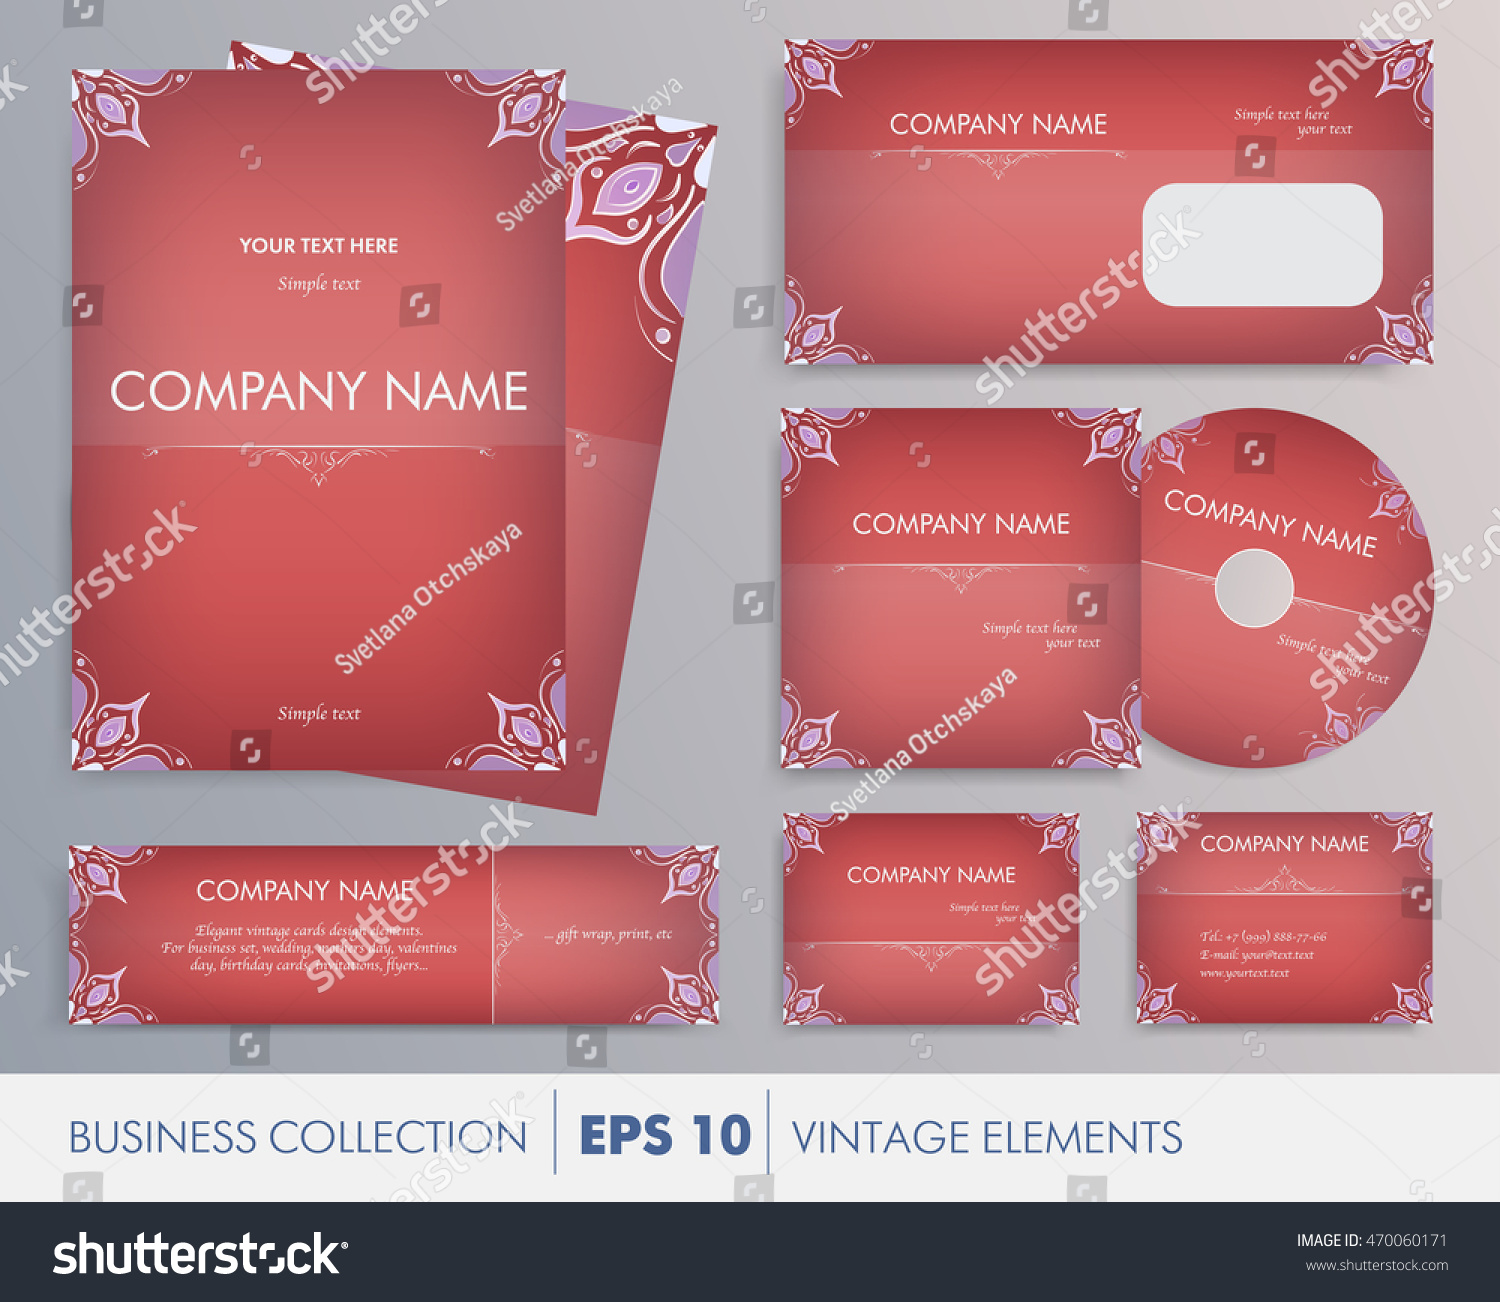 Vector Elegant Vintage Corporate Design Artworks Stock Vector HD ...